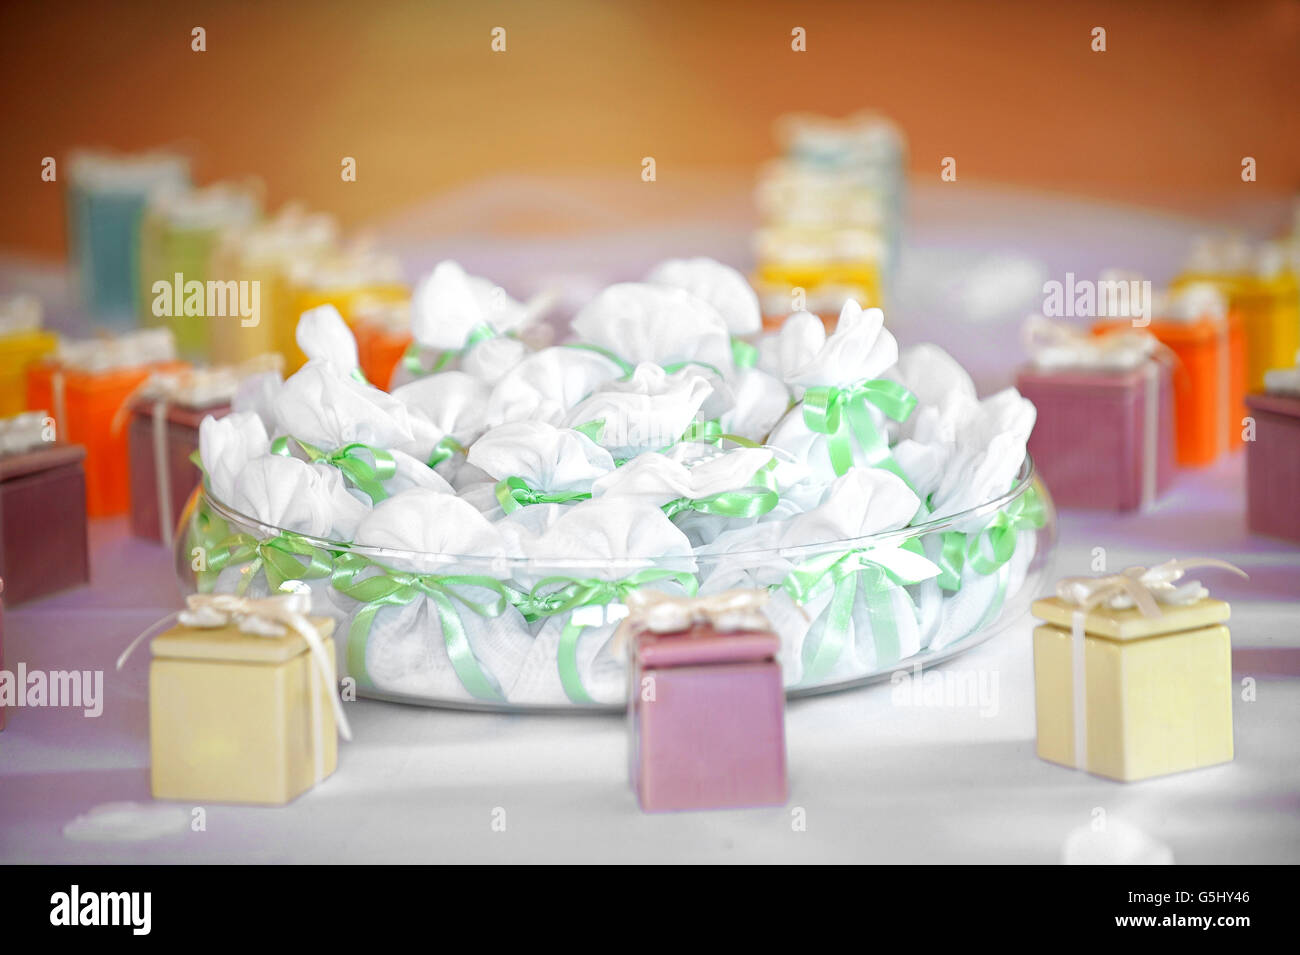 Assorted party favors displayed on a table with colorful gift boxes tied with bows and a bowl of little bags tied - Stock Image